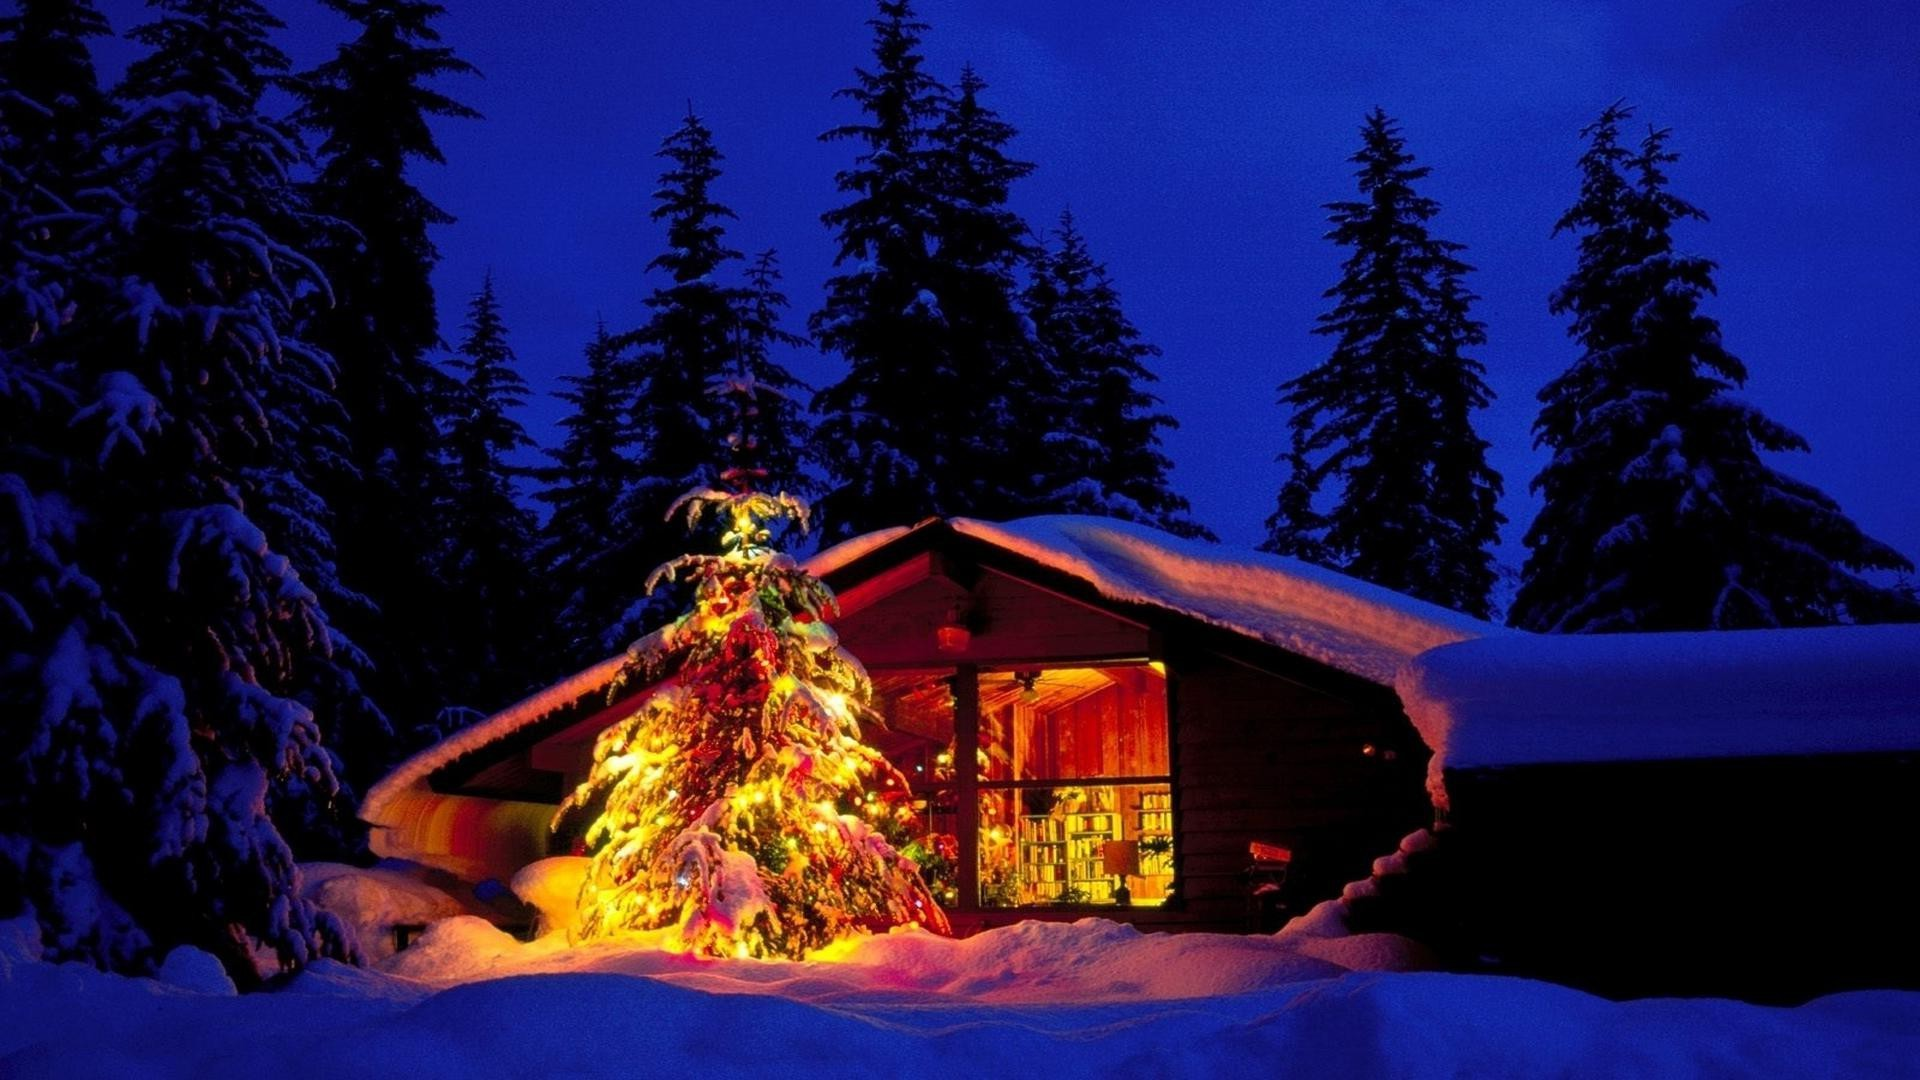 Free Christmas Cabin And Tree In Deep Snow – Landscapes Christmas Desktop  Wallpaper and Computer Background